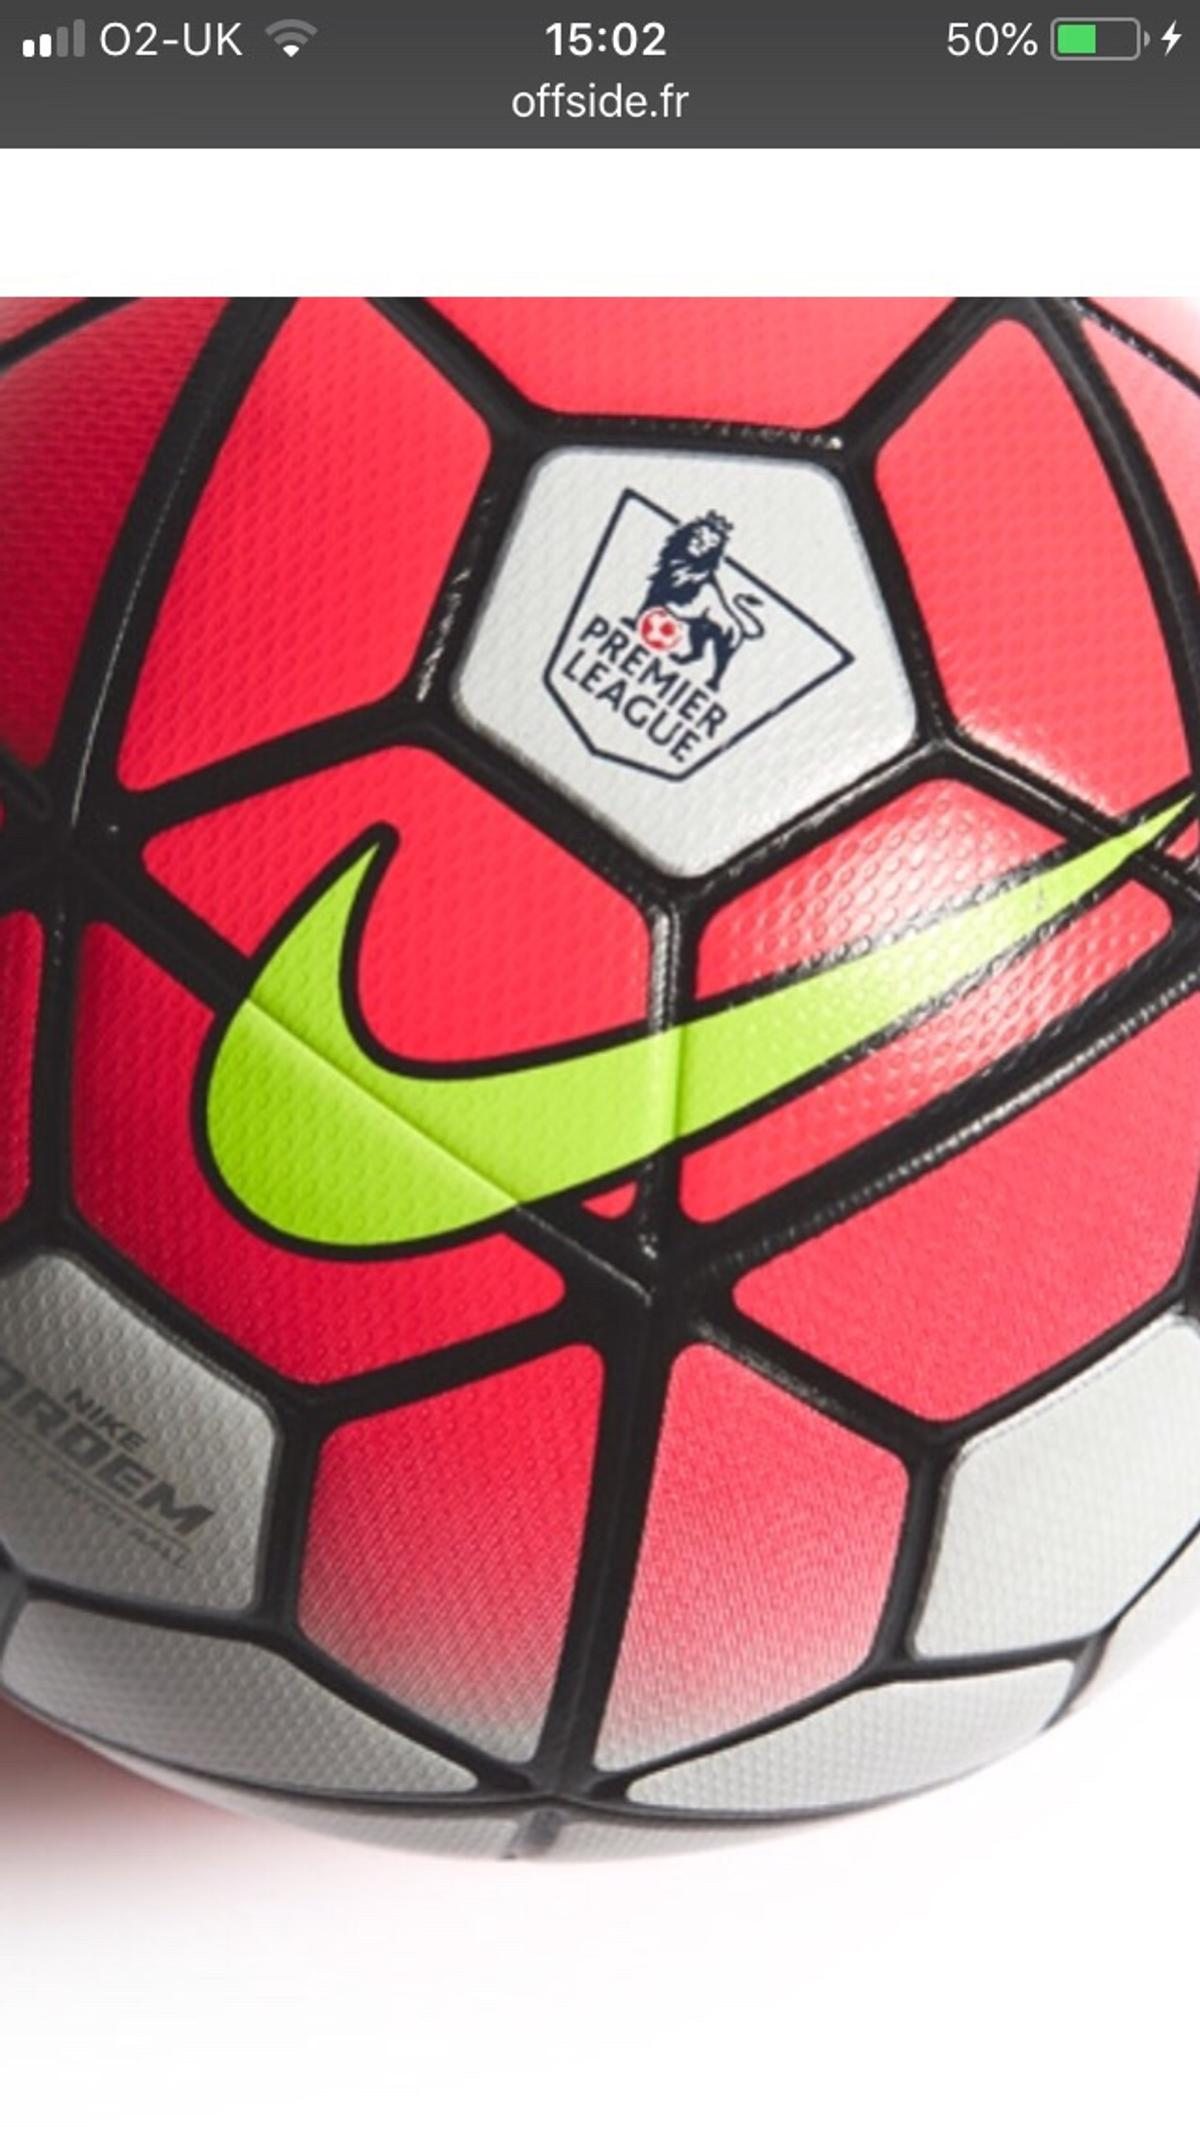 reputable site 84650 82768 Nike Ordem 3 Premier League Matchball in SP10 Valley for £100.00 for ...